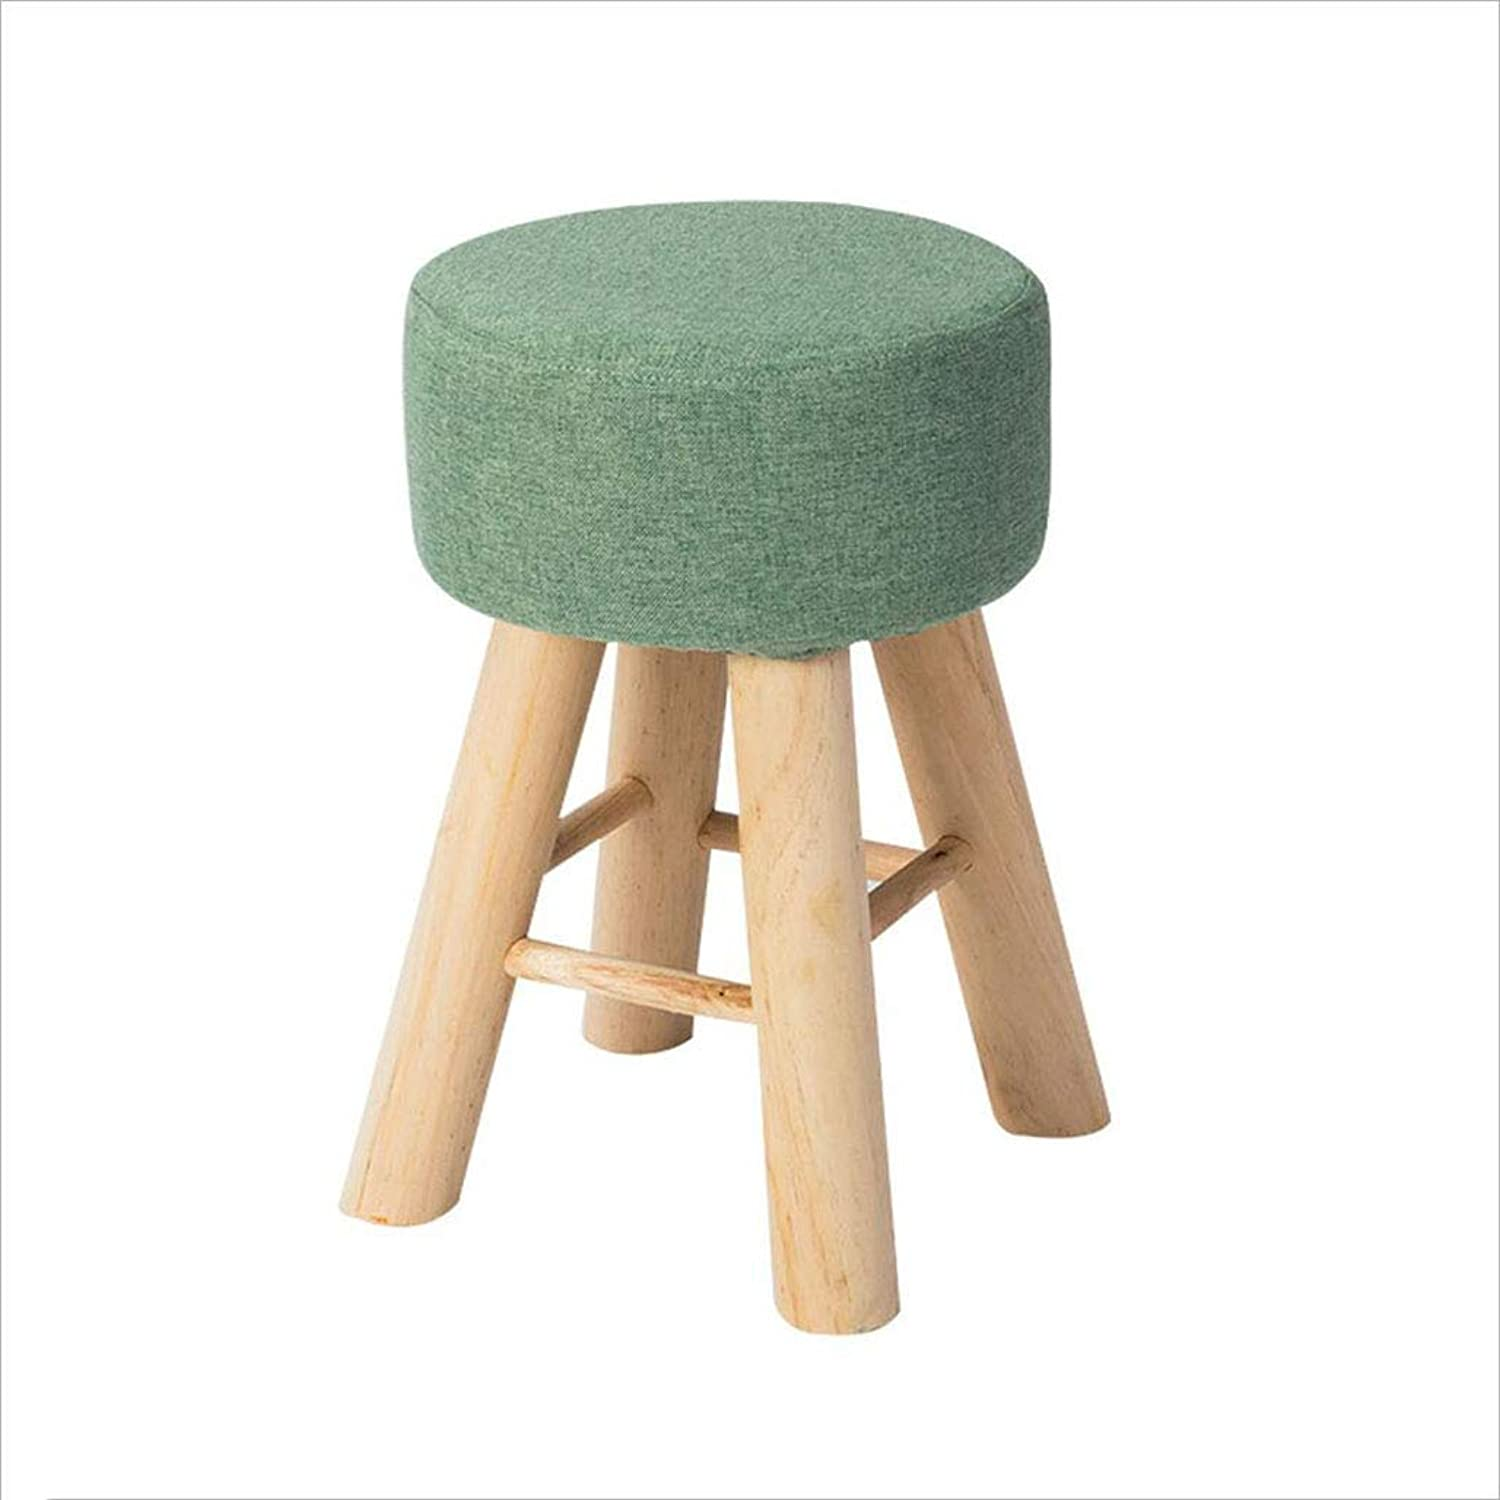 Solid Wood stools Home Small Benches Small stools Fashion Creative Small Chairs Stools Fabric Makeup stools Dressing stools, 43×28cm, 5